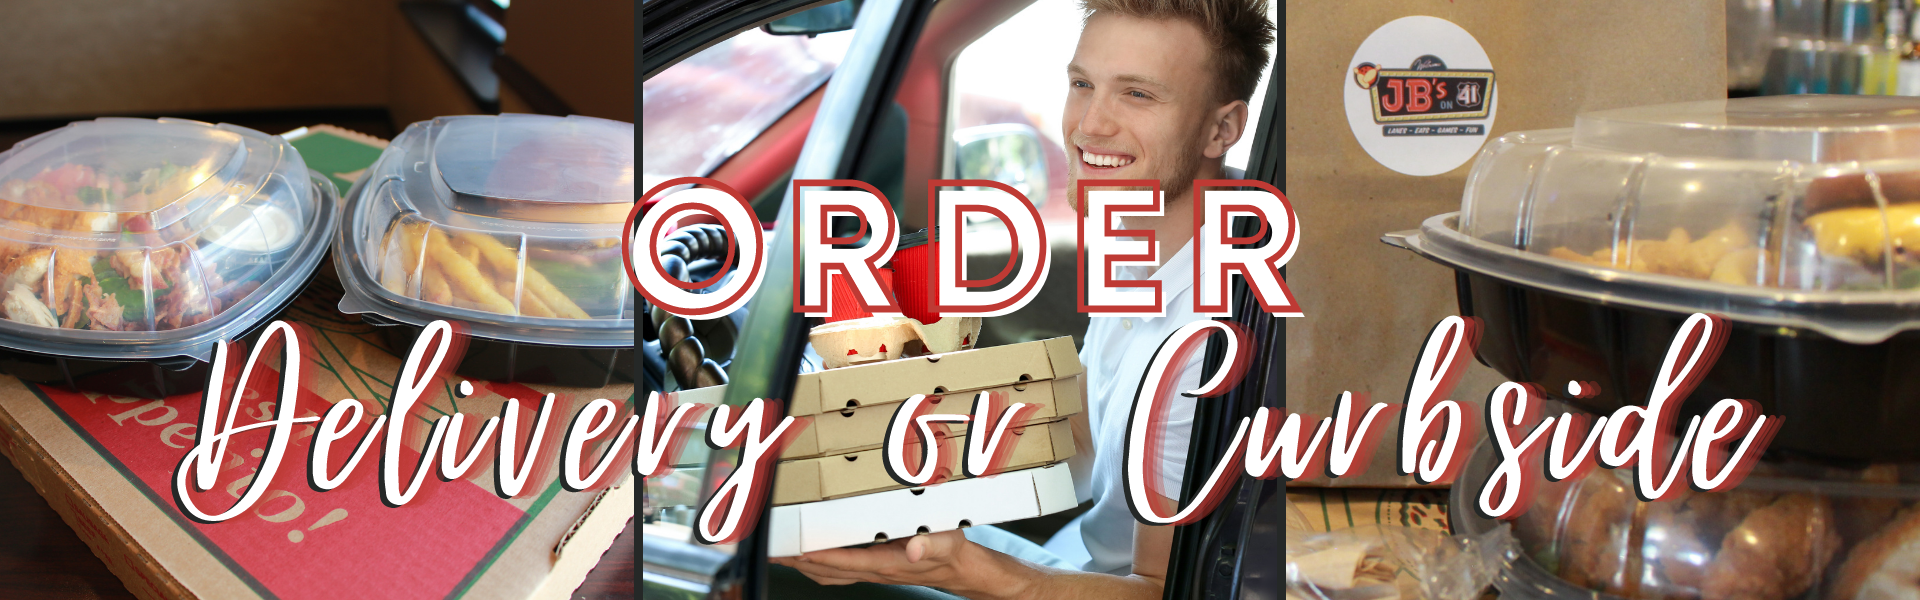 curbside and delivery from JB's on 41 | not your average bowling alley food